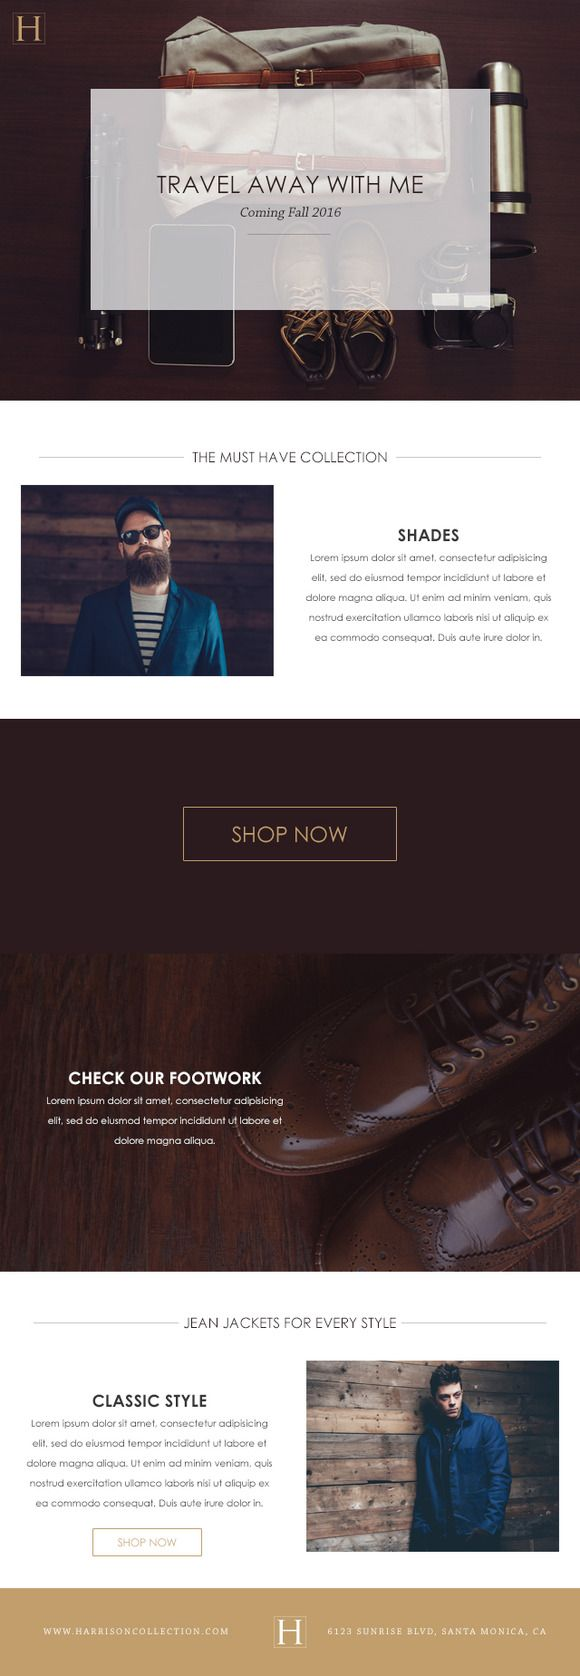 Best Email Templates Images On   Email Design Email